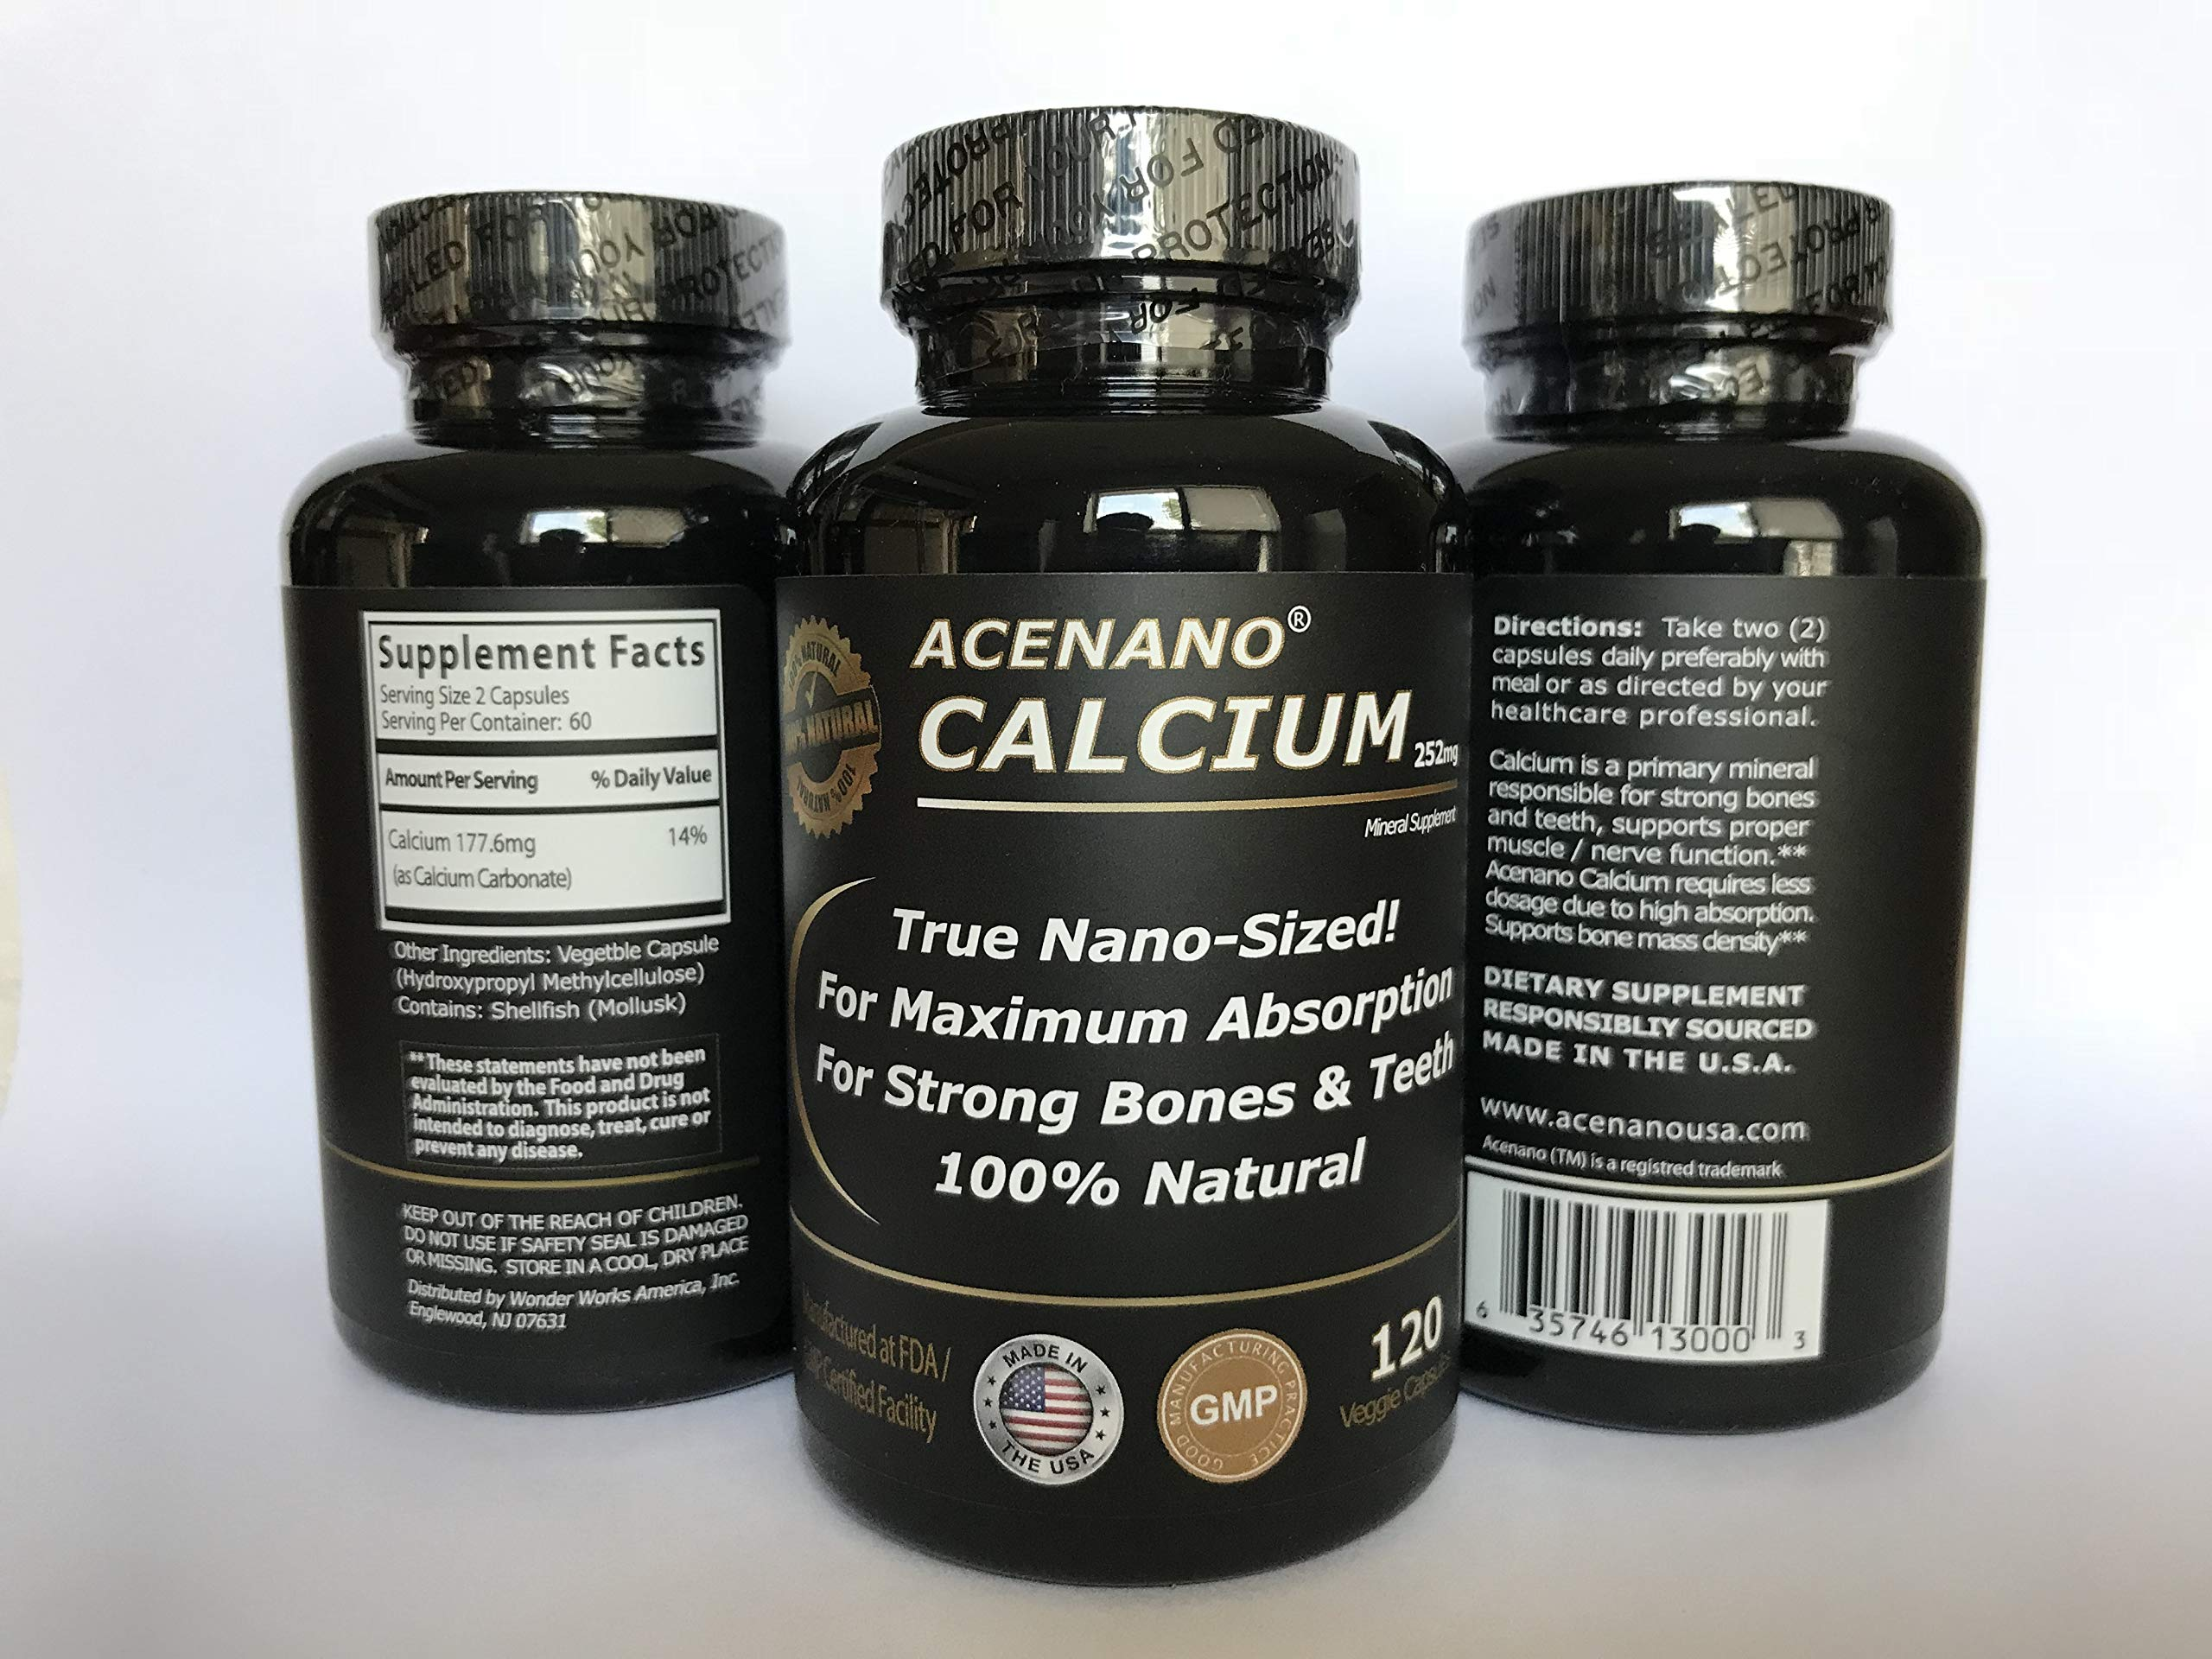 Real Nano Calcium Supplement (3 Bottles, True Nano Sized Calcium for Superior Absorption in Capsule), Made in USA